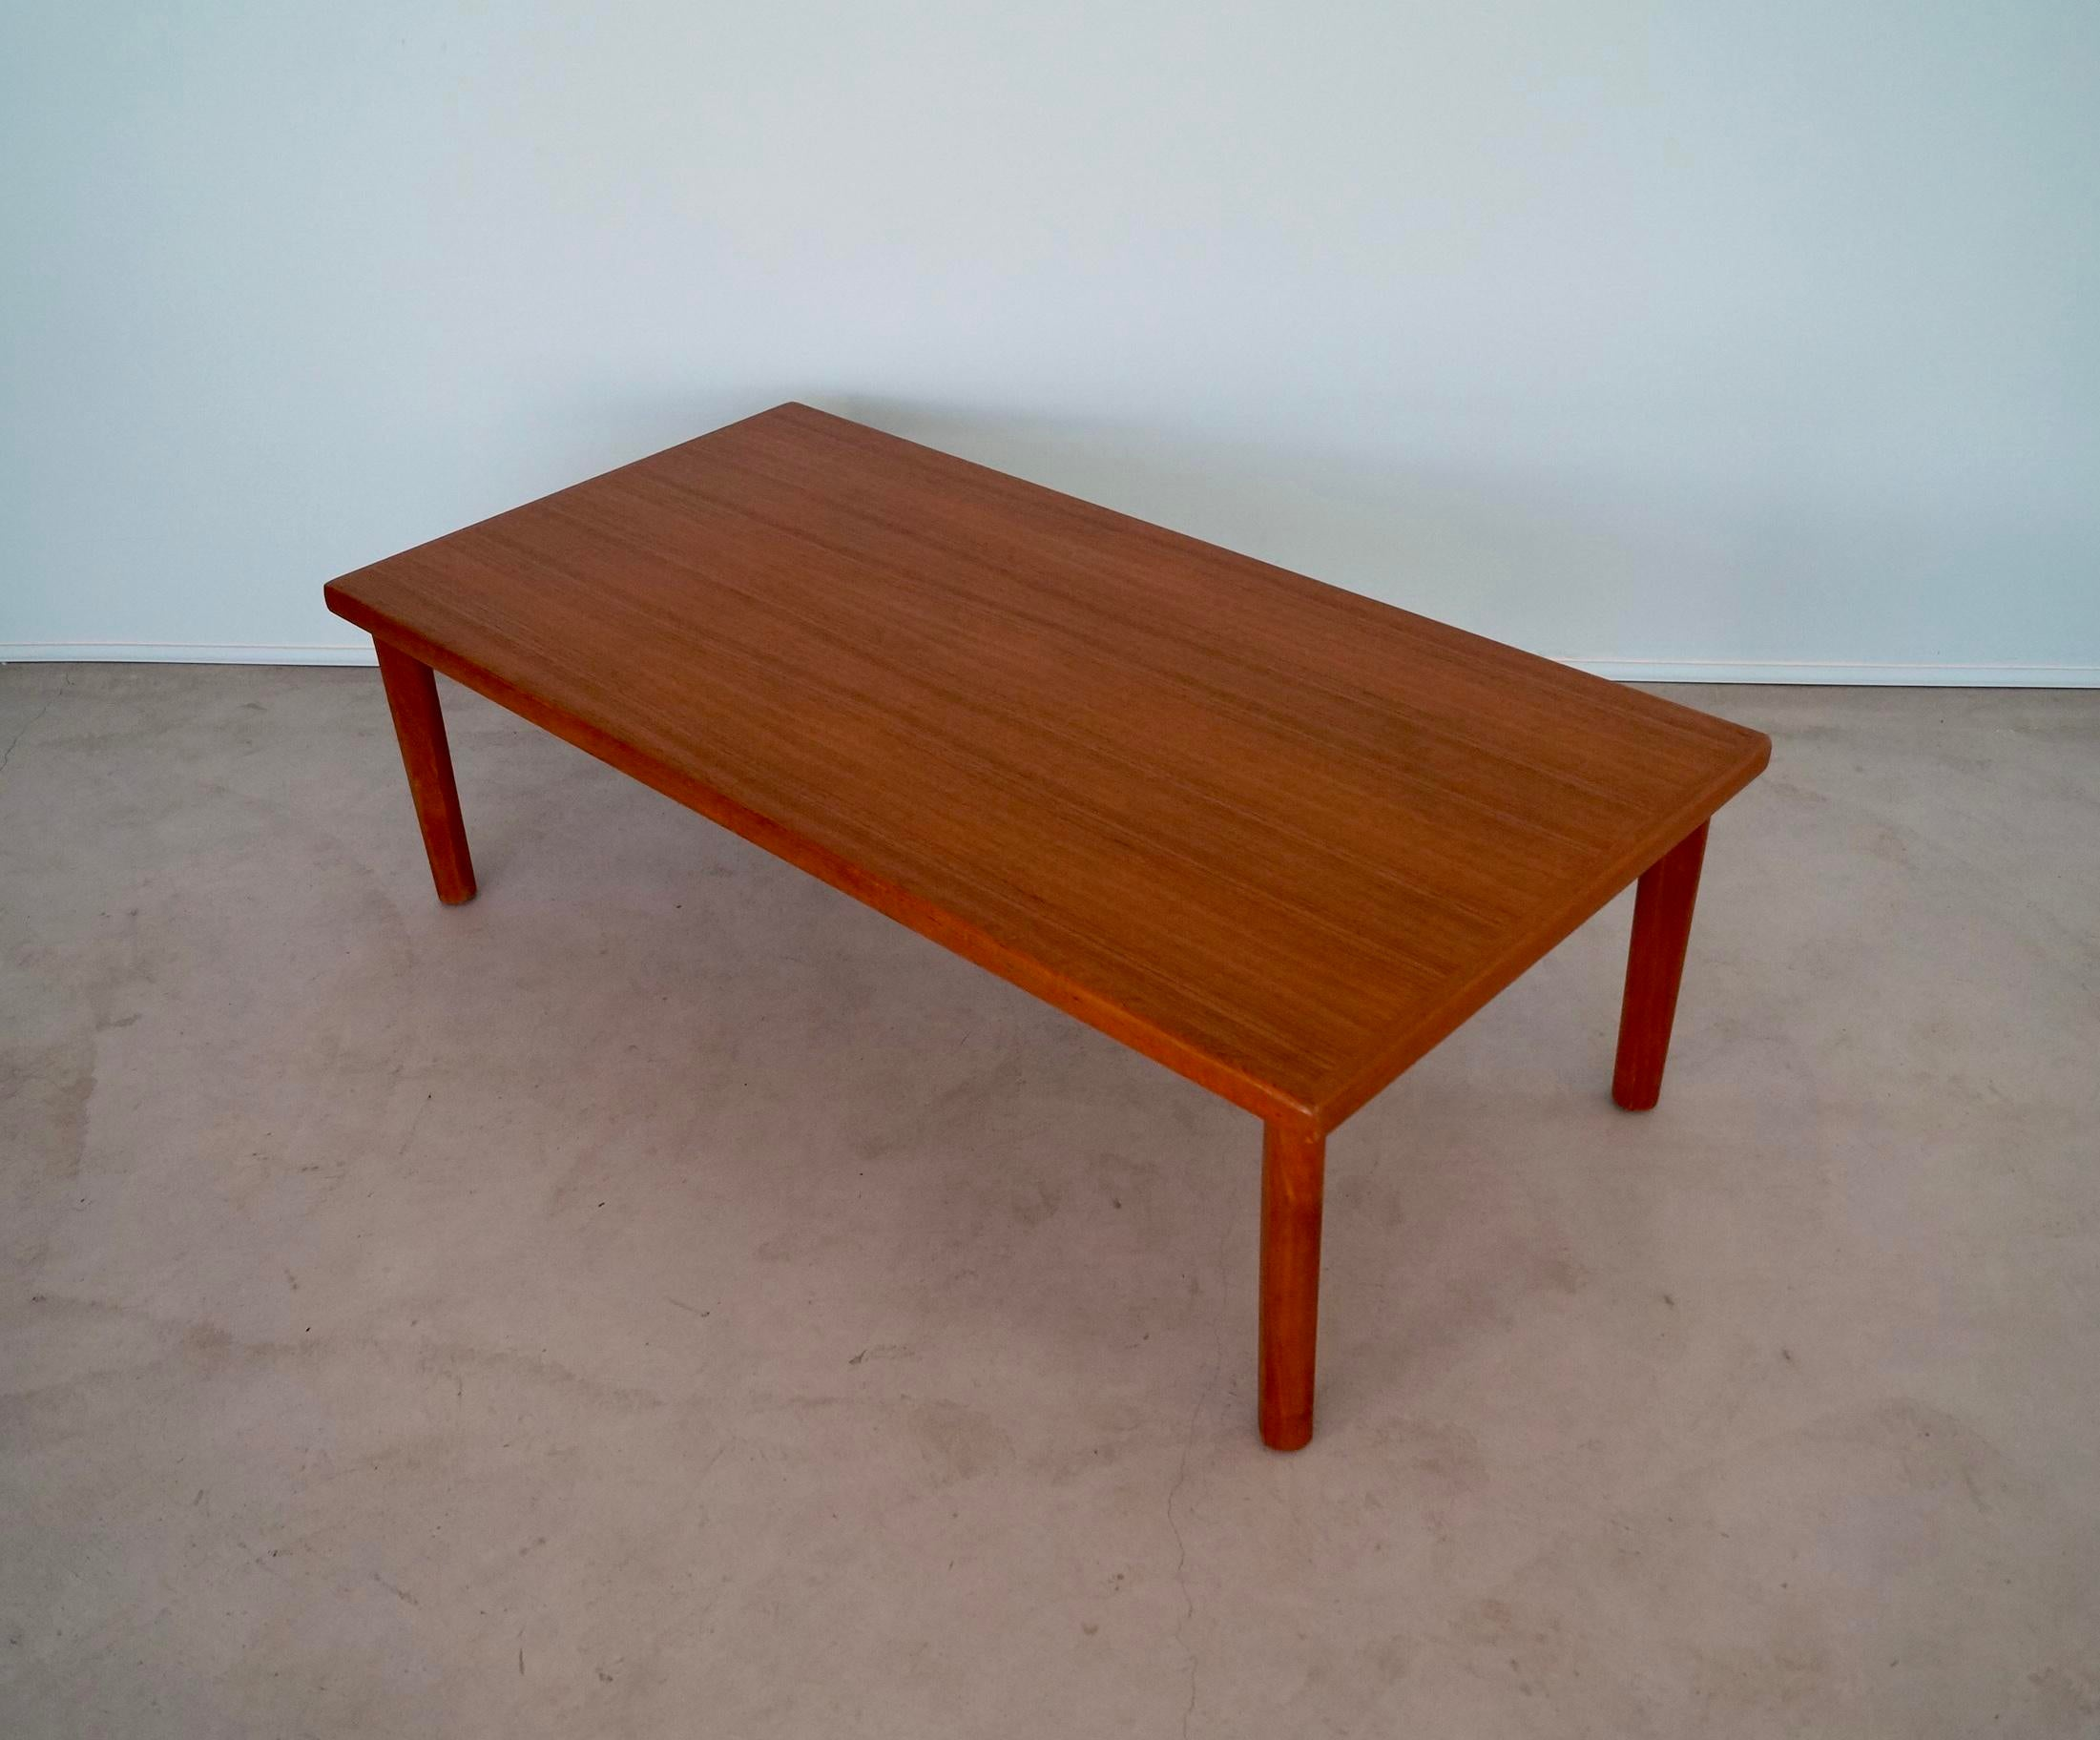 Incroyable Vejle Stole U0026 Møbelfabrik 1960u0027s Vintage Danish Modern Vejle Stole Teak Coffee  Table For Sale